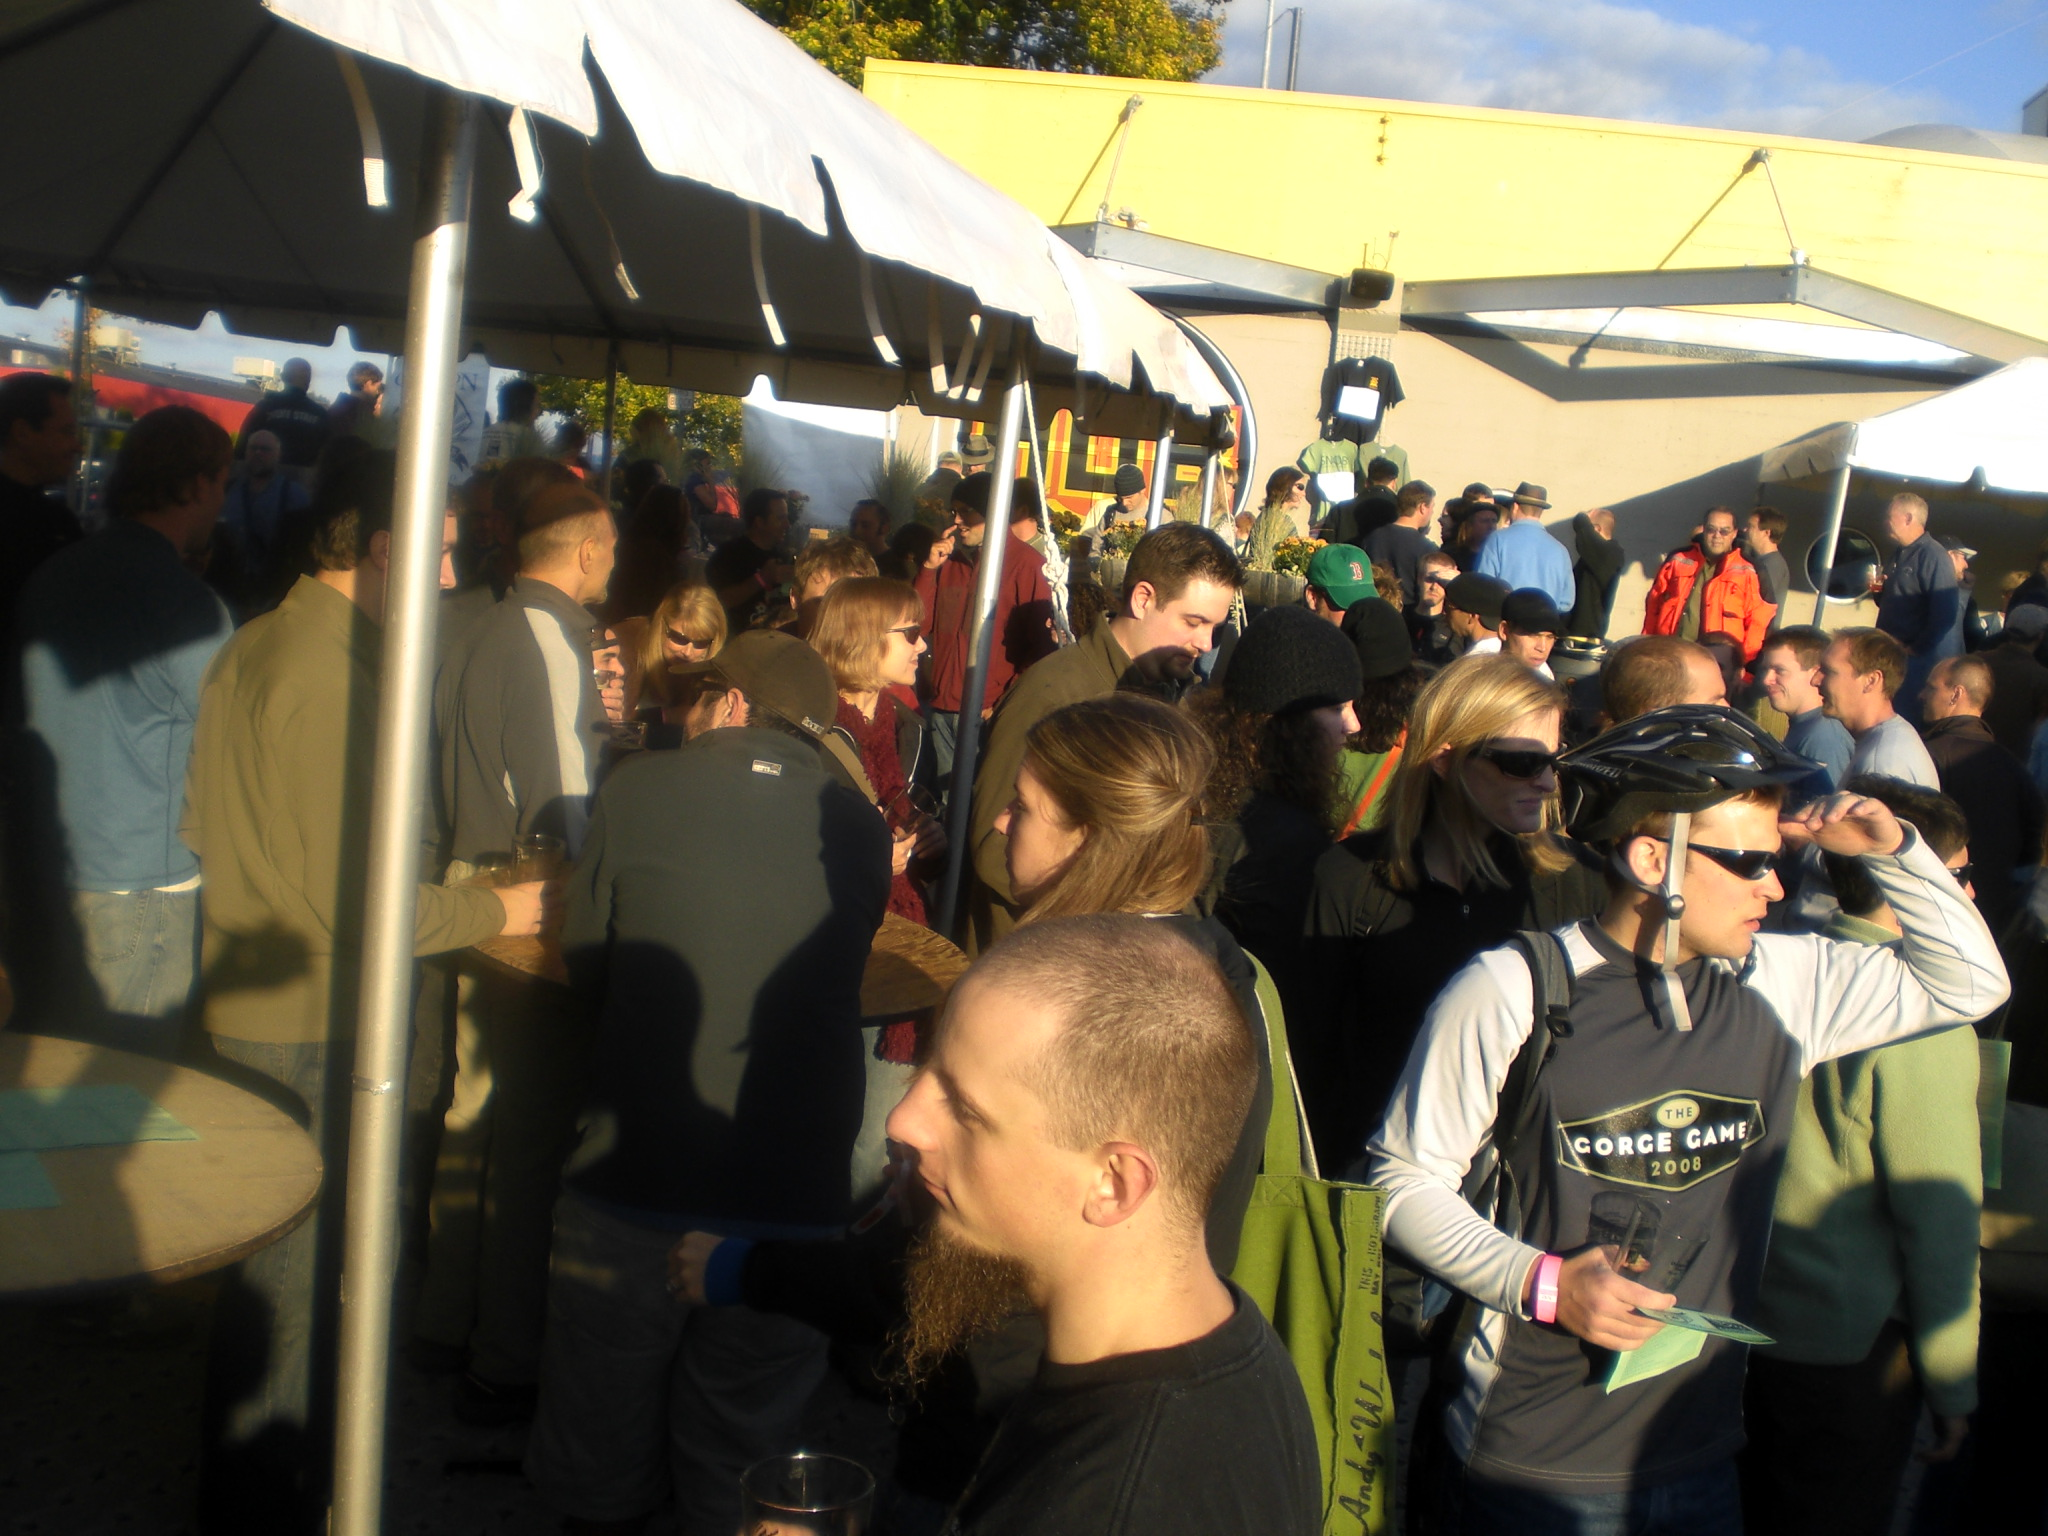 Maddening crowds depleted the Portland Fresh Hops quickly